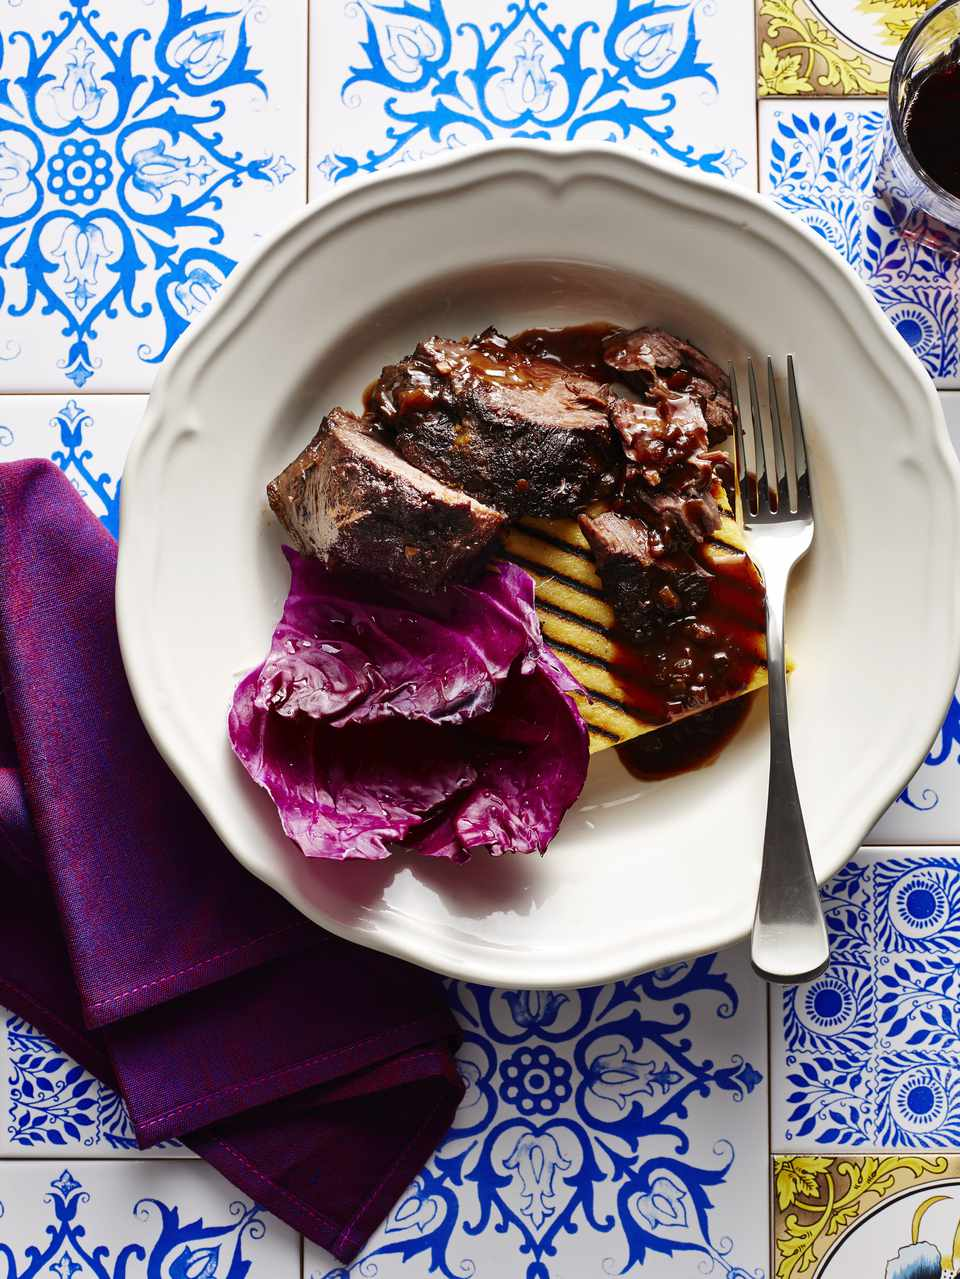 Braised Beef Cheek with Grilled Polenta and Radicchio